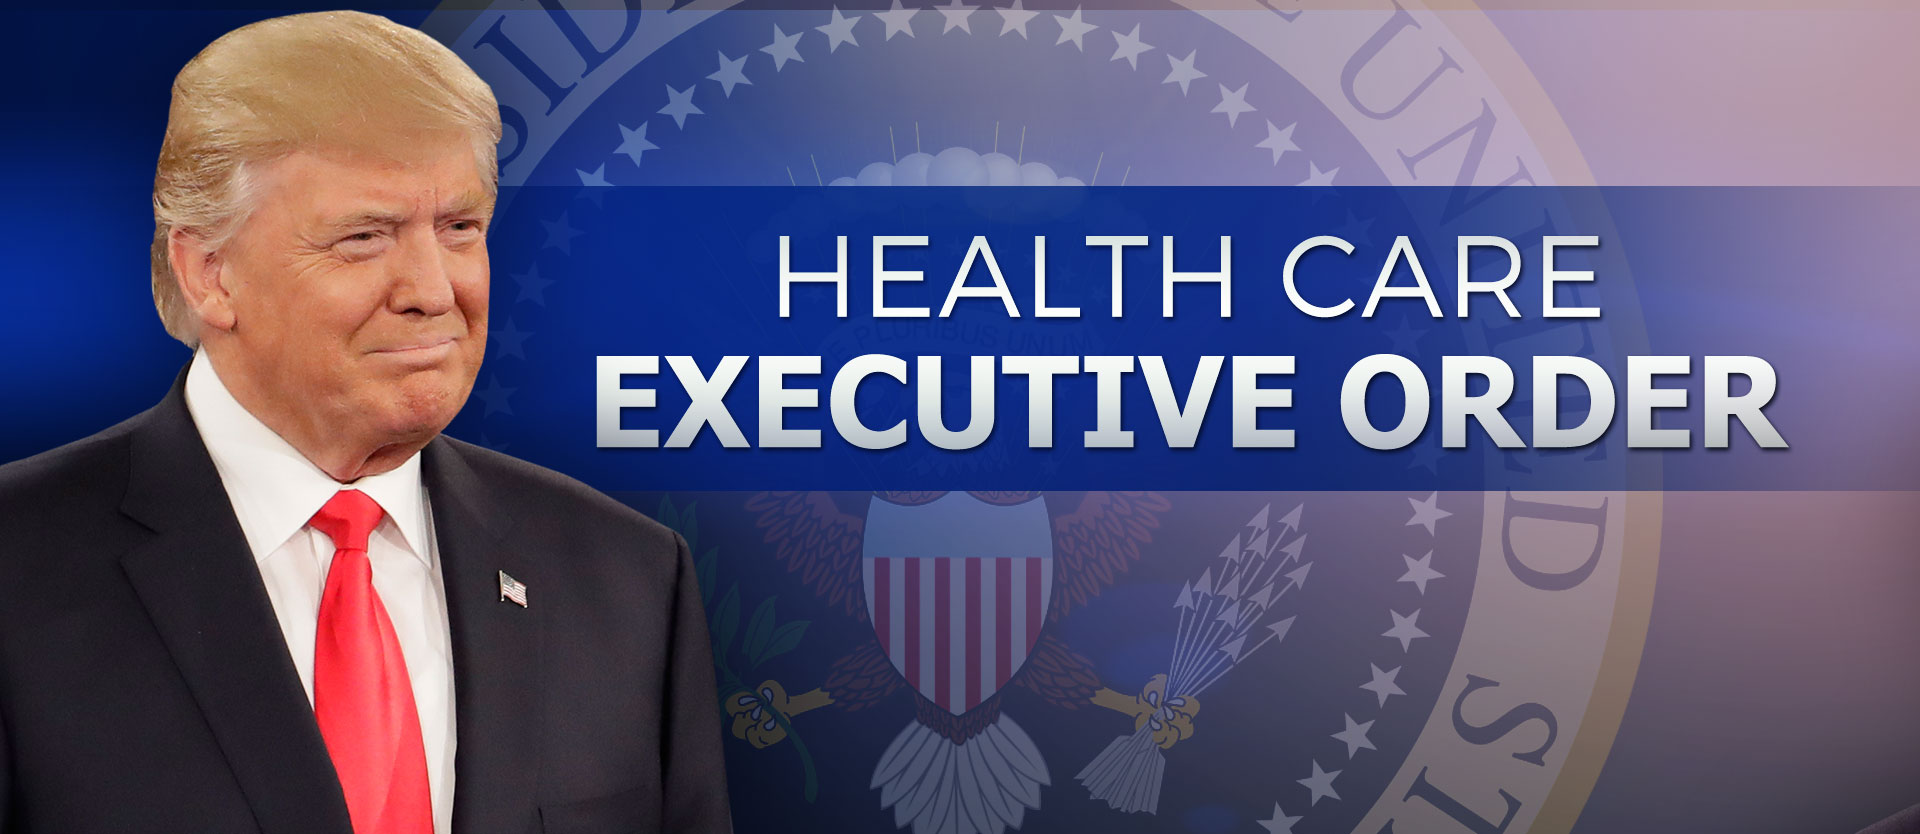 President Trump health care executive order